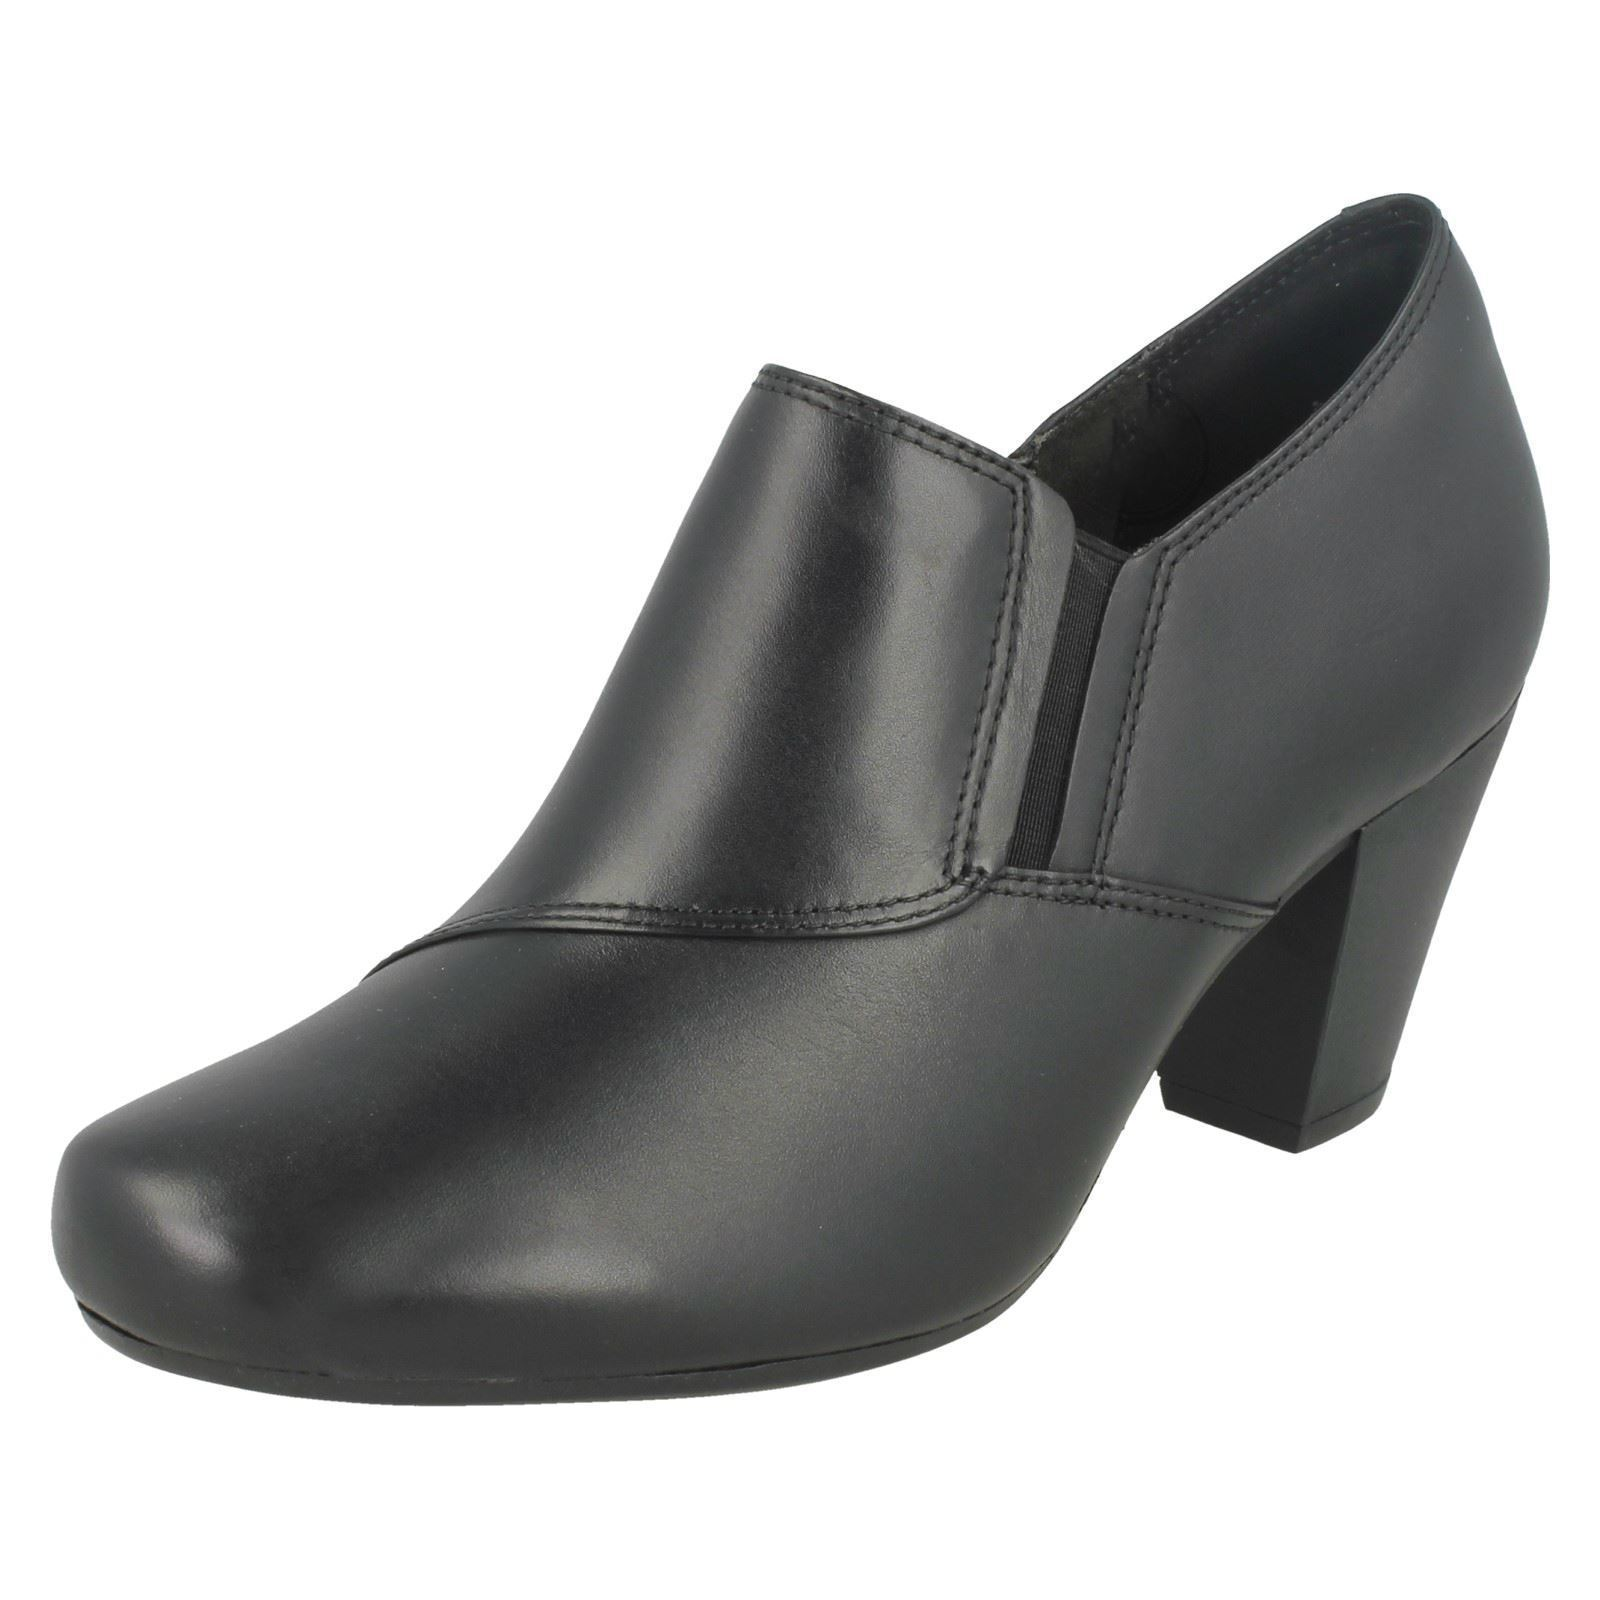 Ladies Clarks Garnit Colette Black Leather Smart shoes Boots D Fitting